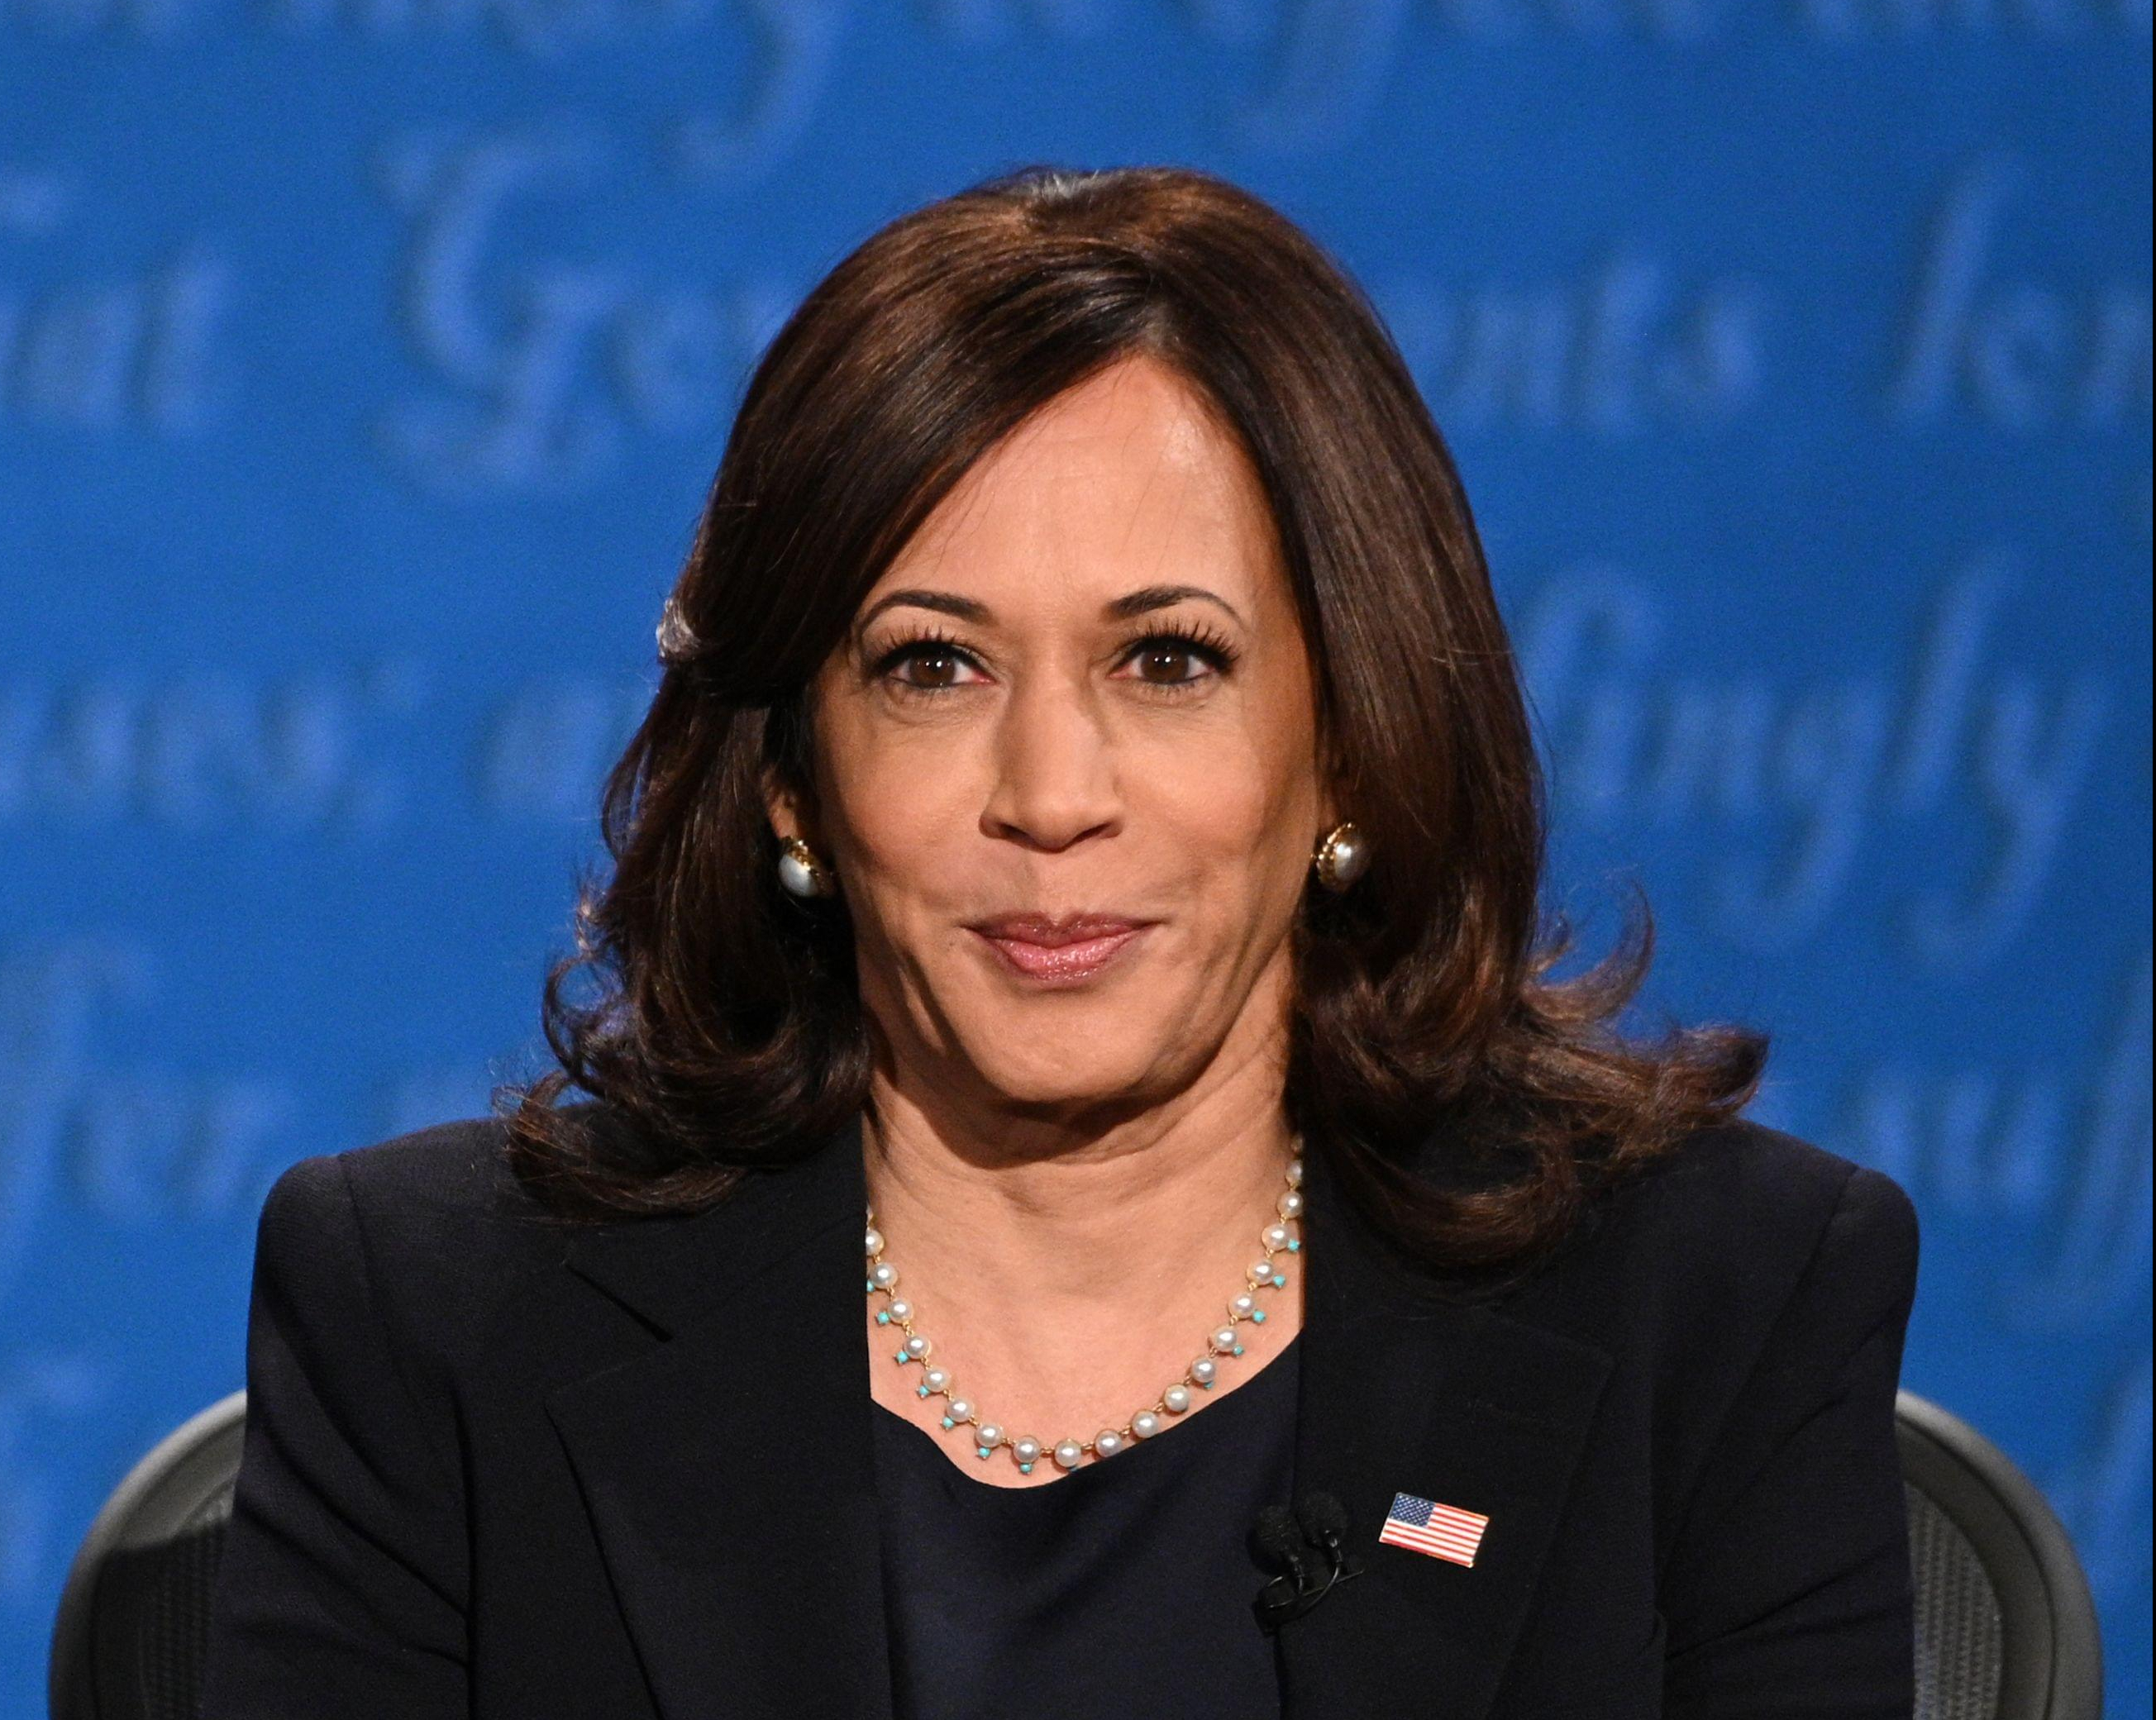 VP Harris Releases Strategy She Says Will Tackle Migration's Root Causes